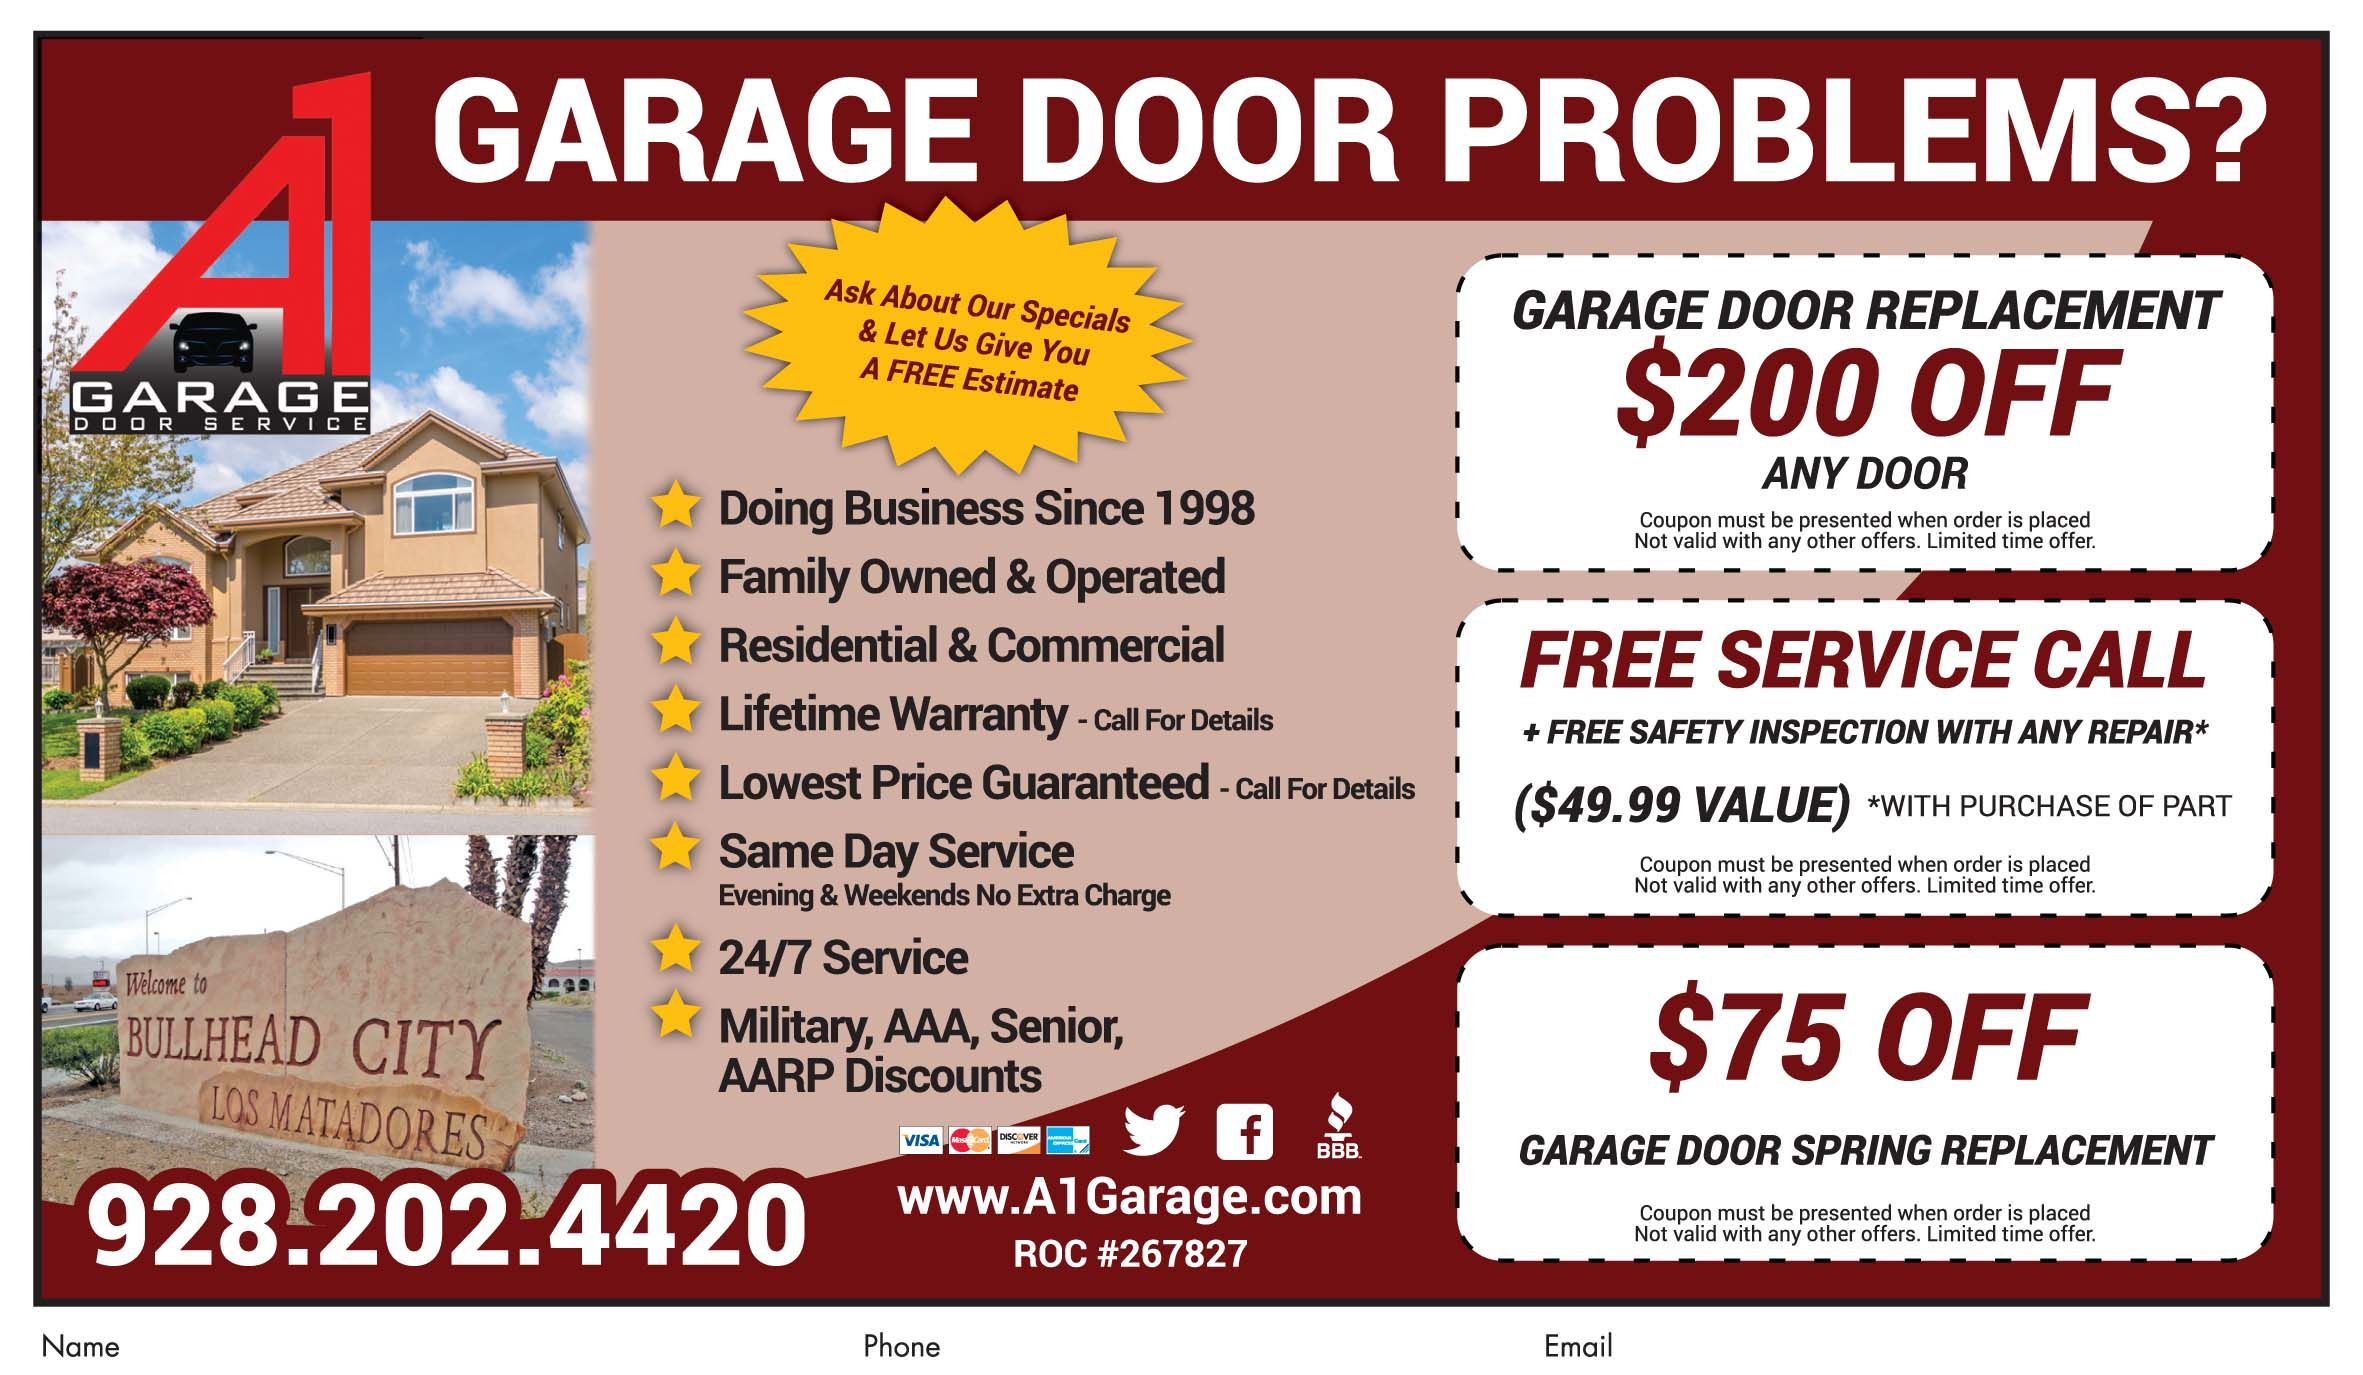 Get 200 Off Any Garage Door Replacement At A1 Garage Door Repair In Bhc Call Now For Deal Garage Door Replacement Garage Door Problems Garage Door Repair